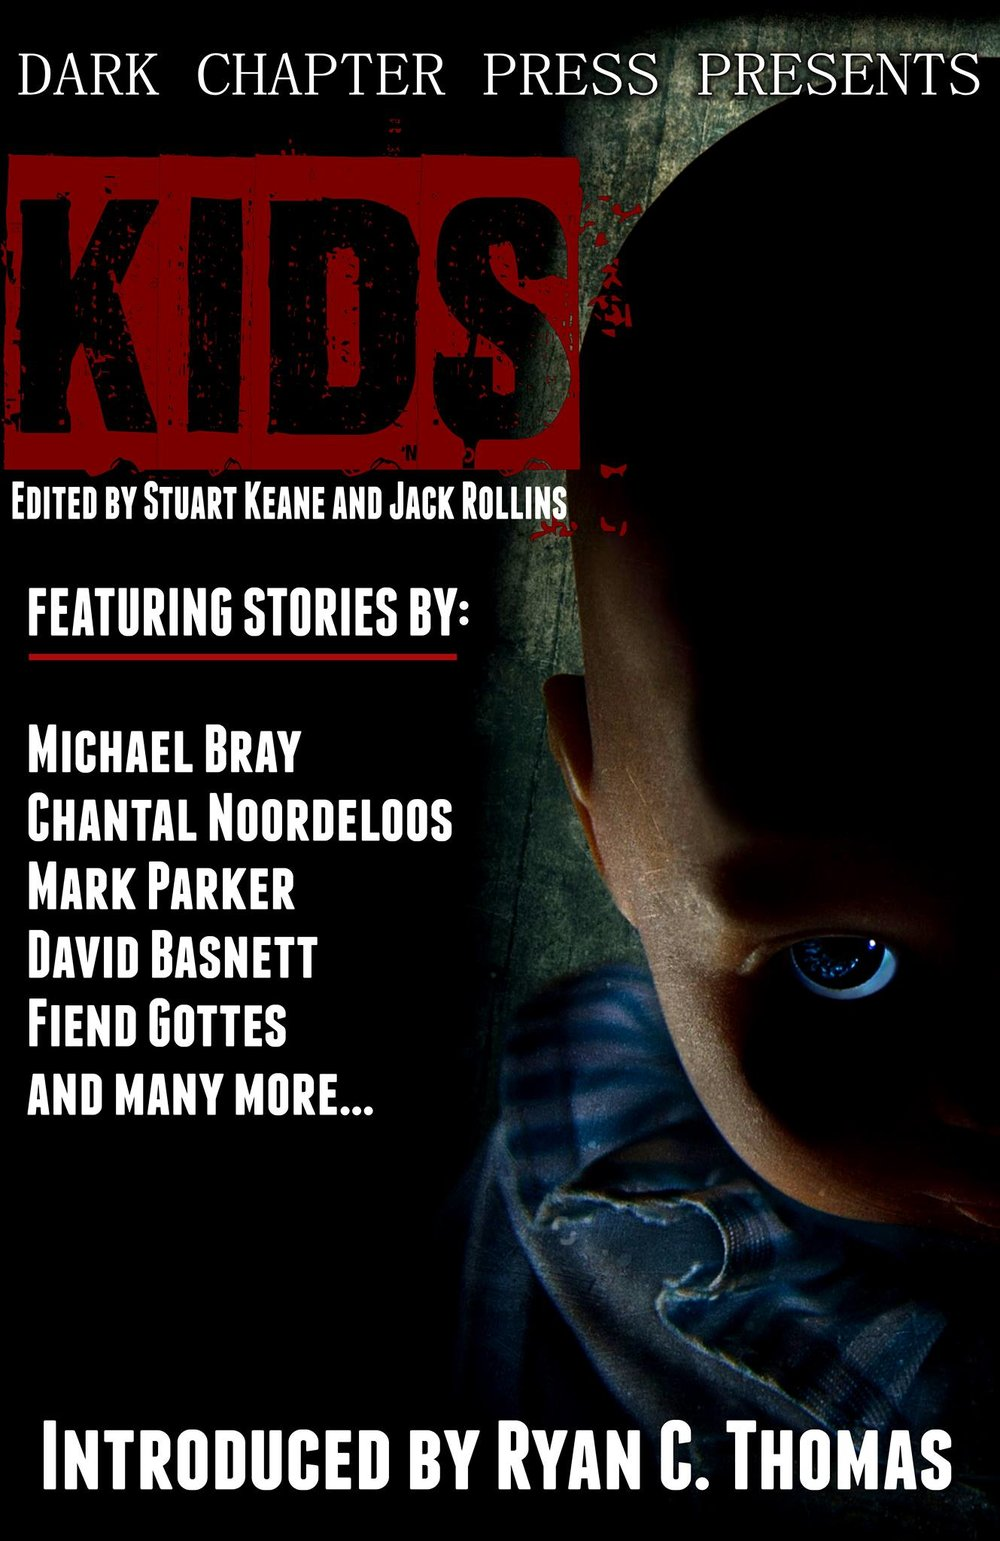 Kids, the wildly successful anthology of stories from Dark Chapter Press featuring a cast of the most menacing kids you could ever hope not to meet!